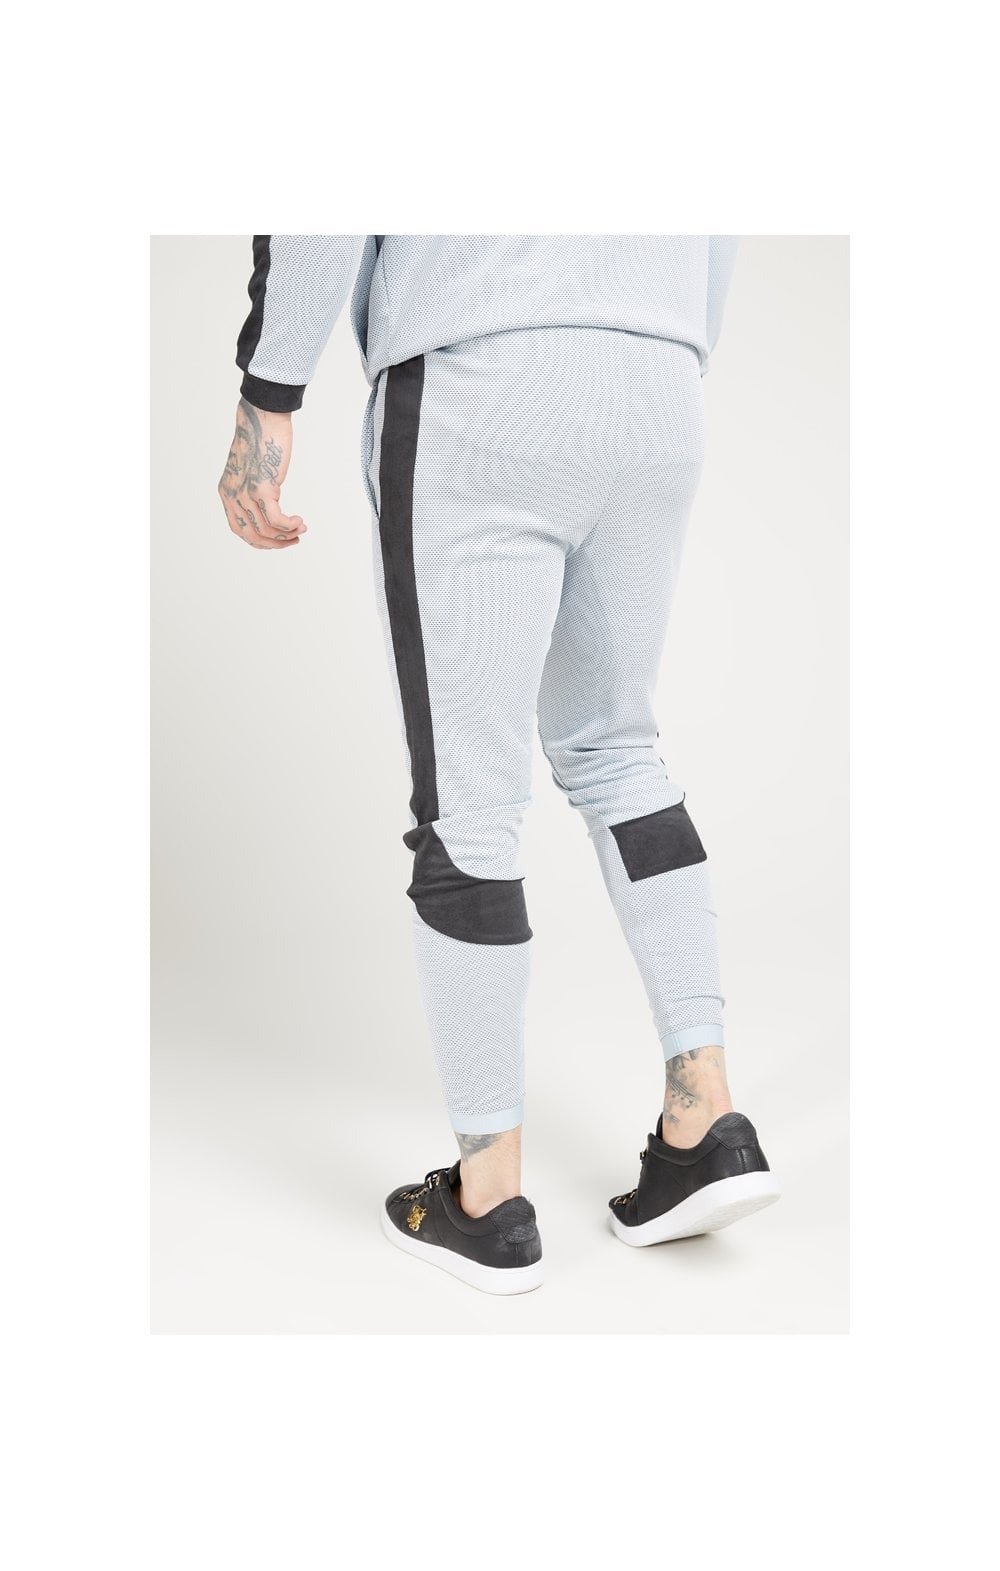 Load image into Gallery viewer, SikSilk Athlete Eyelet Tape Track Pants – Ice Grey & Charcoal (1)